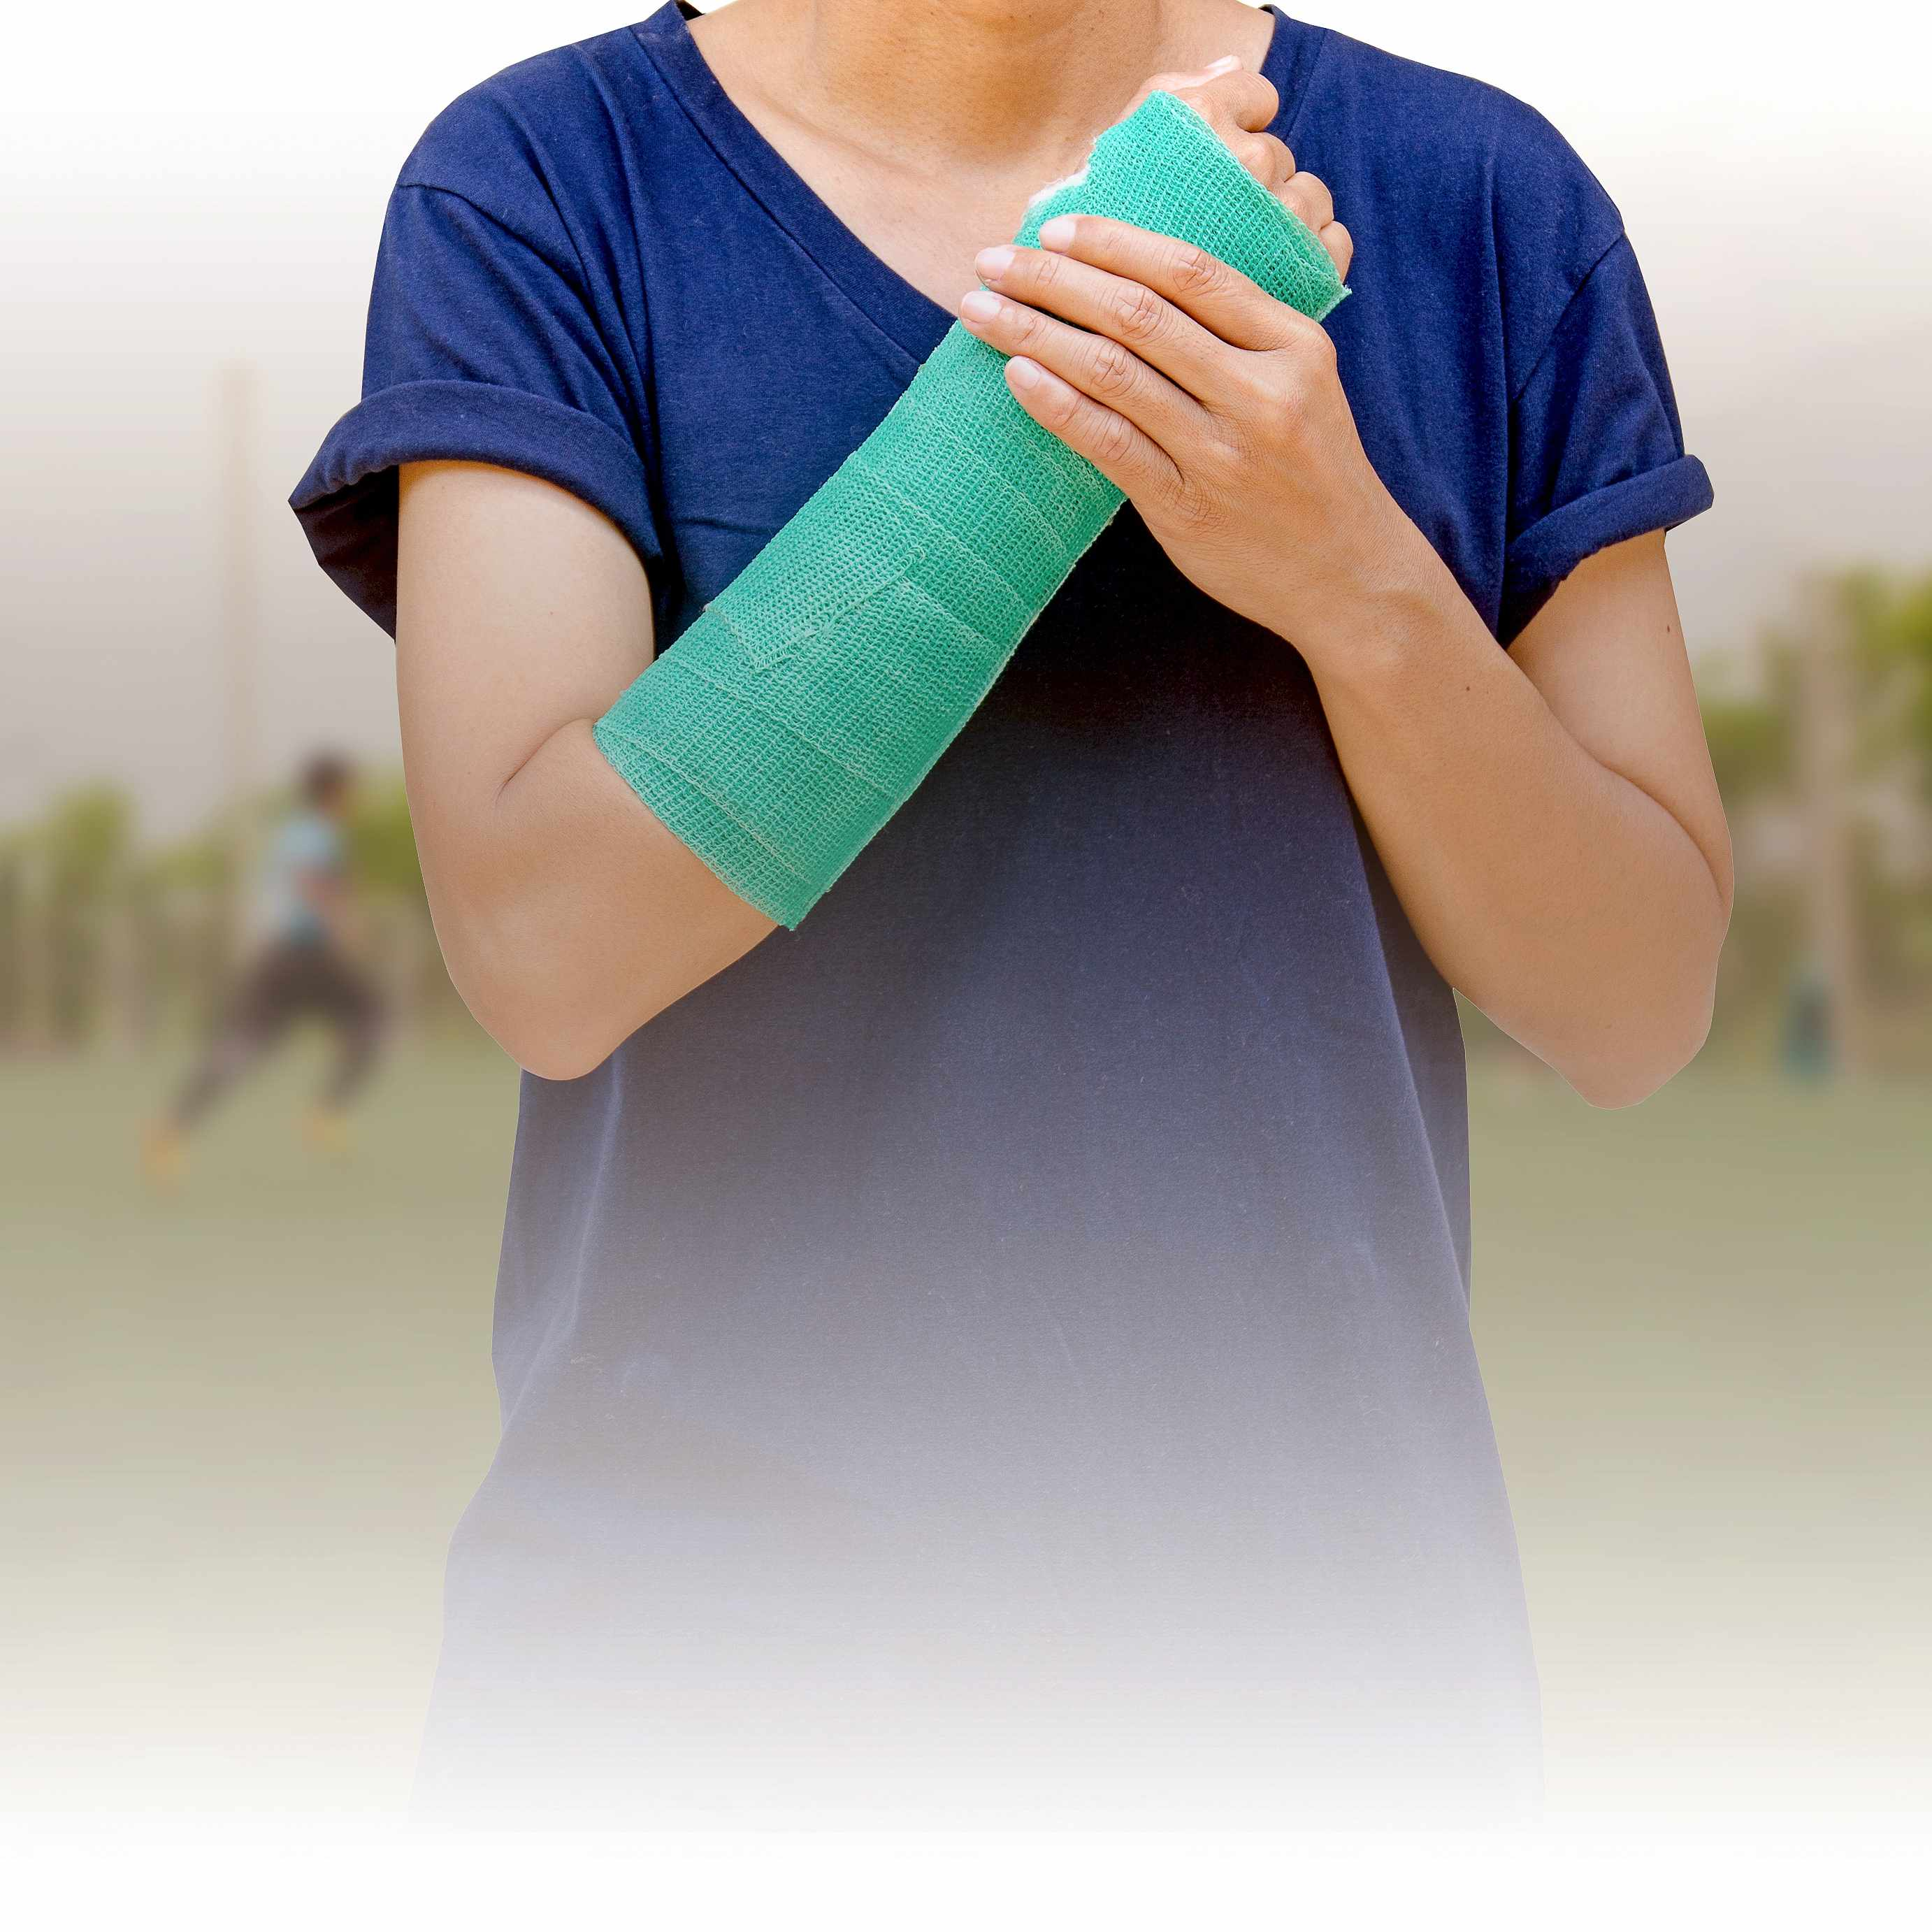 a teenager with a cast on the arm, wrist to elbow, standing in front of other teenagers playing soccer